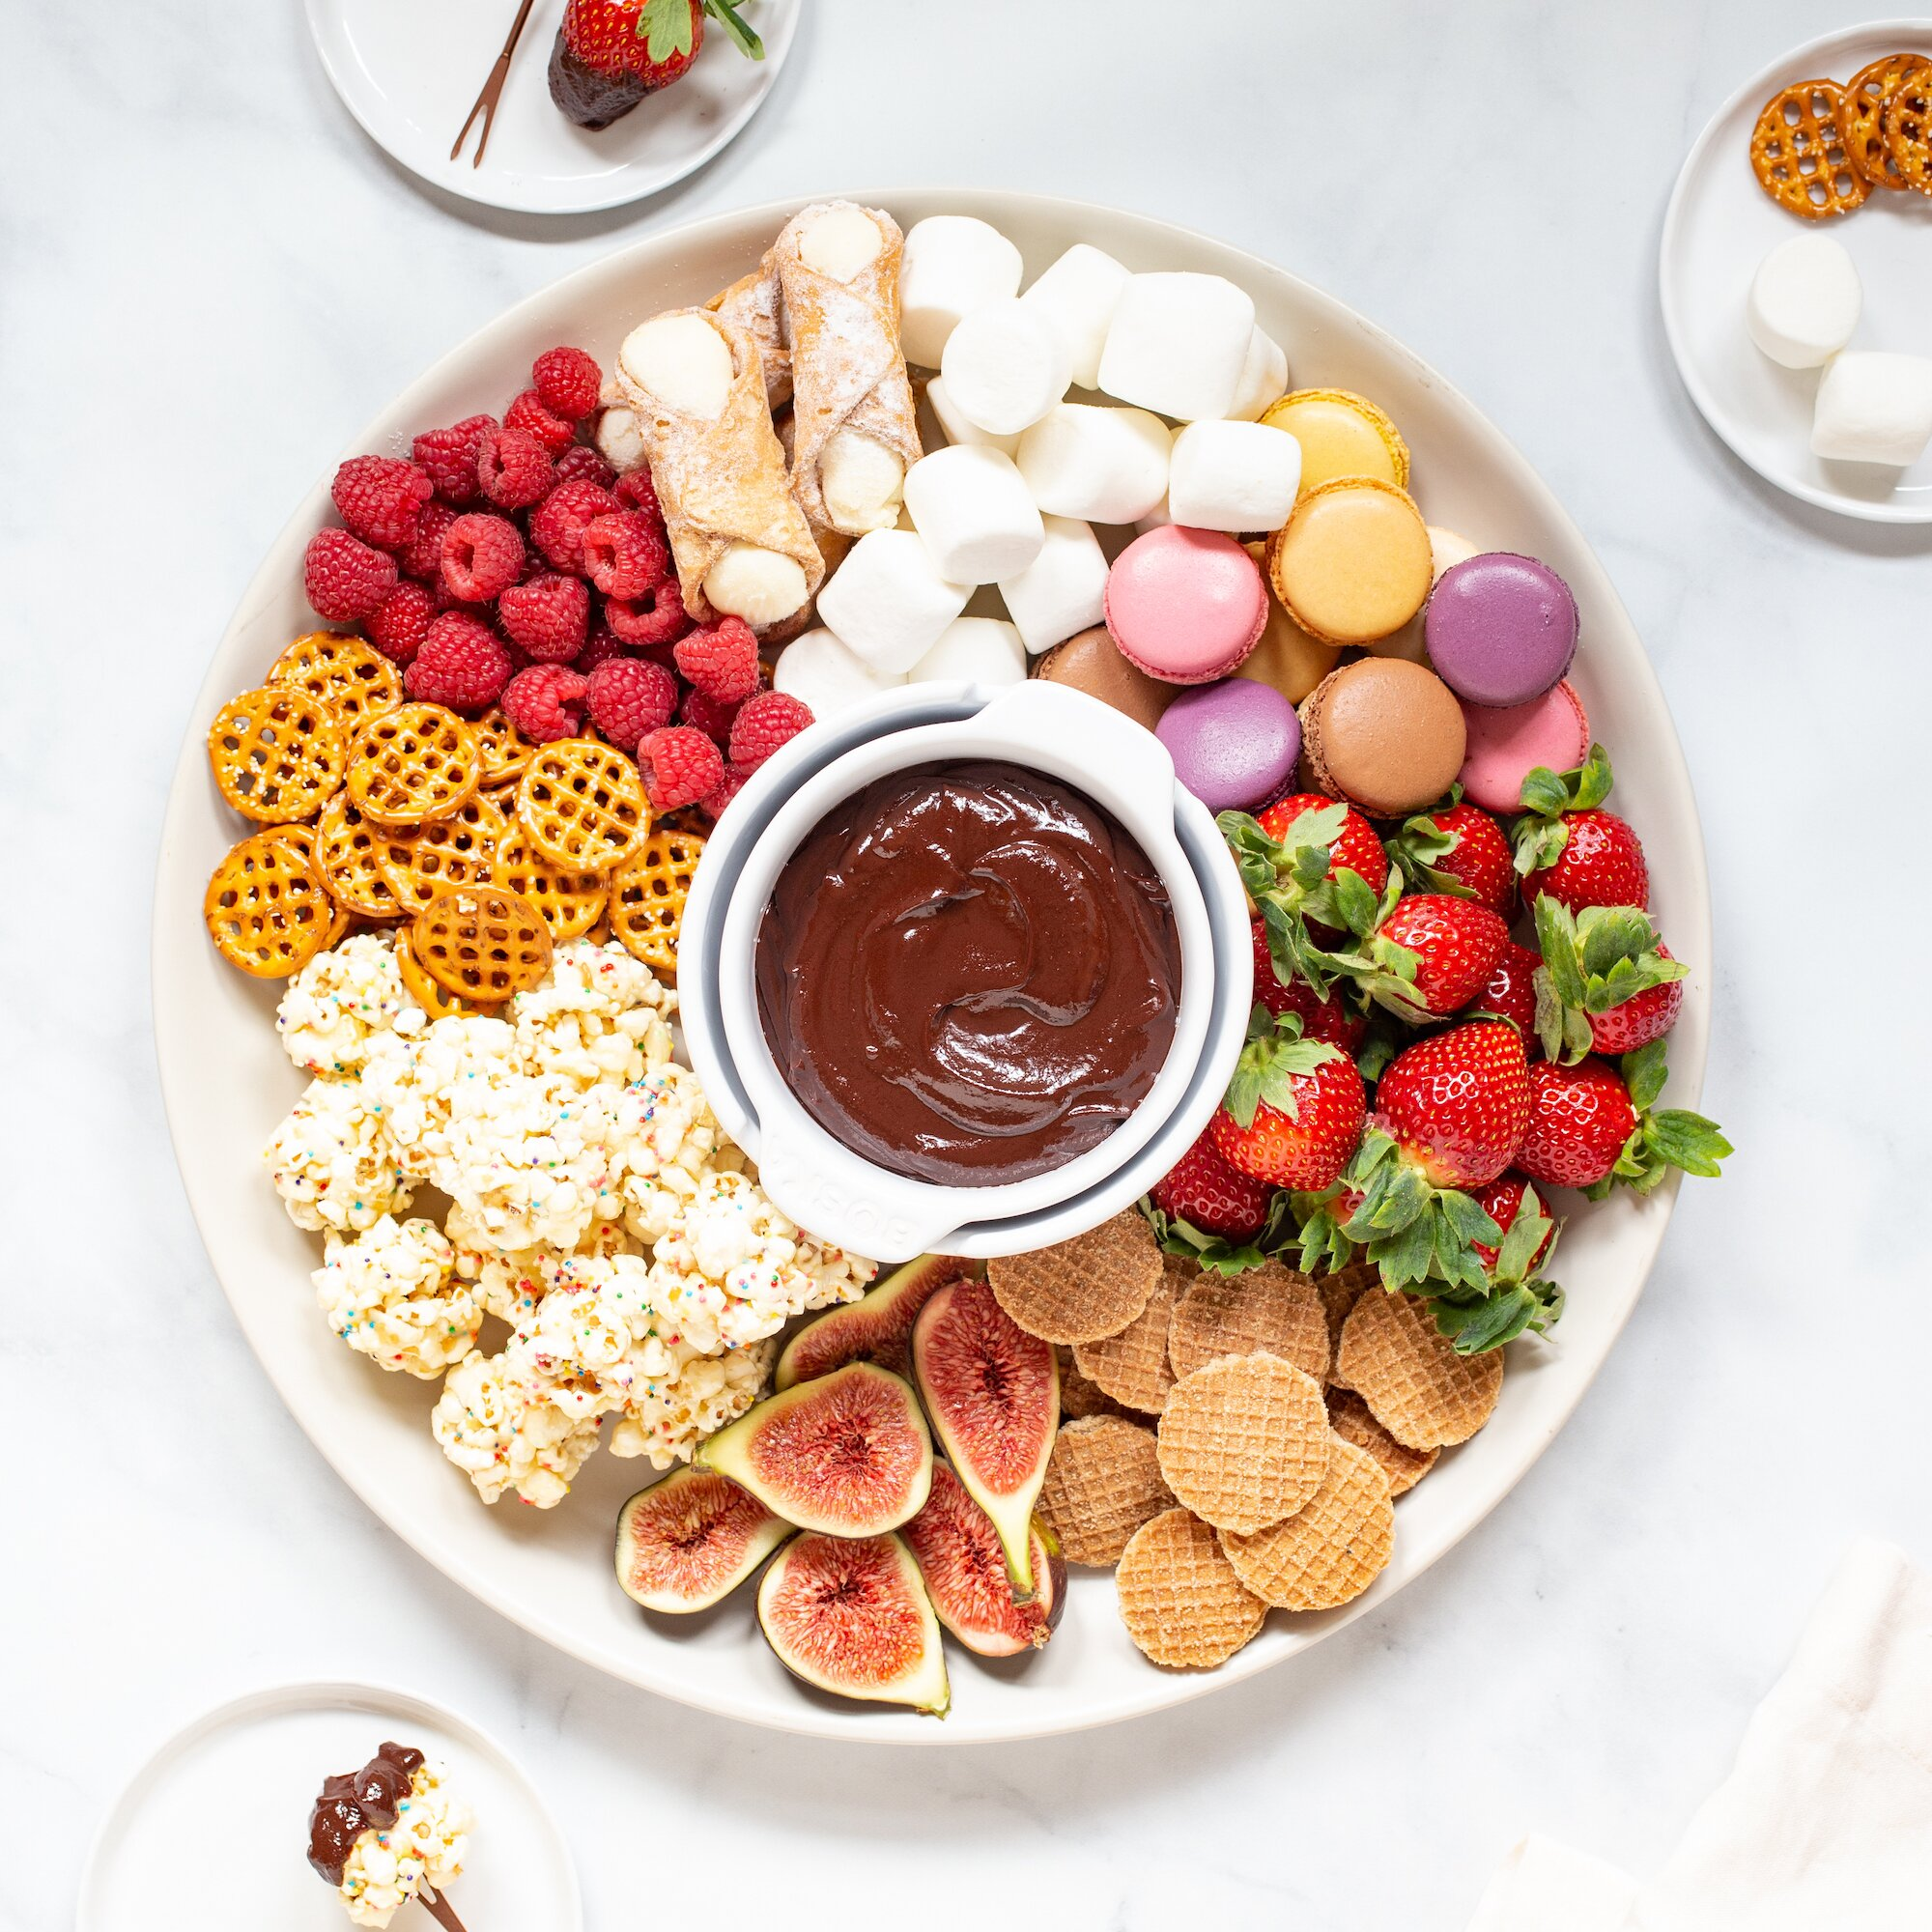 a pot of chocolate fondue with various ingredients for dipping